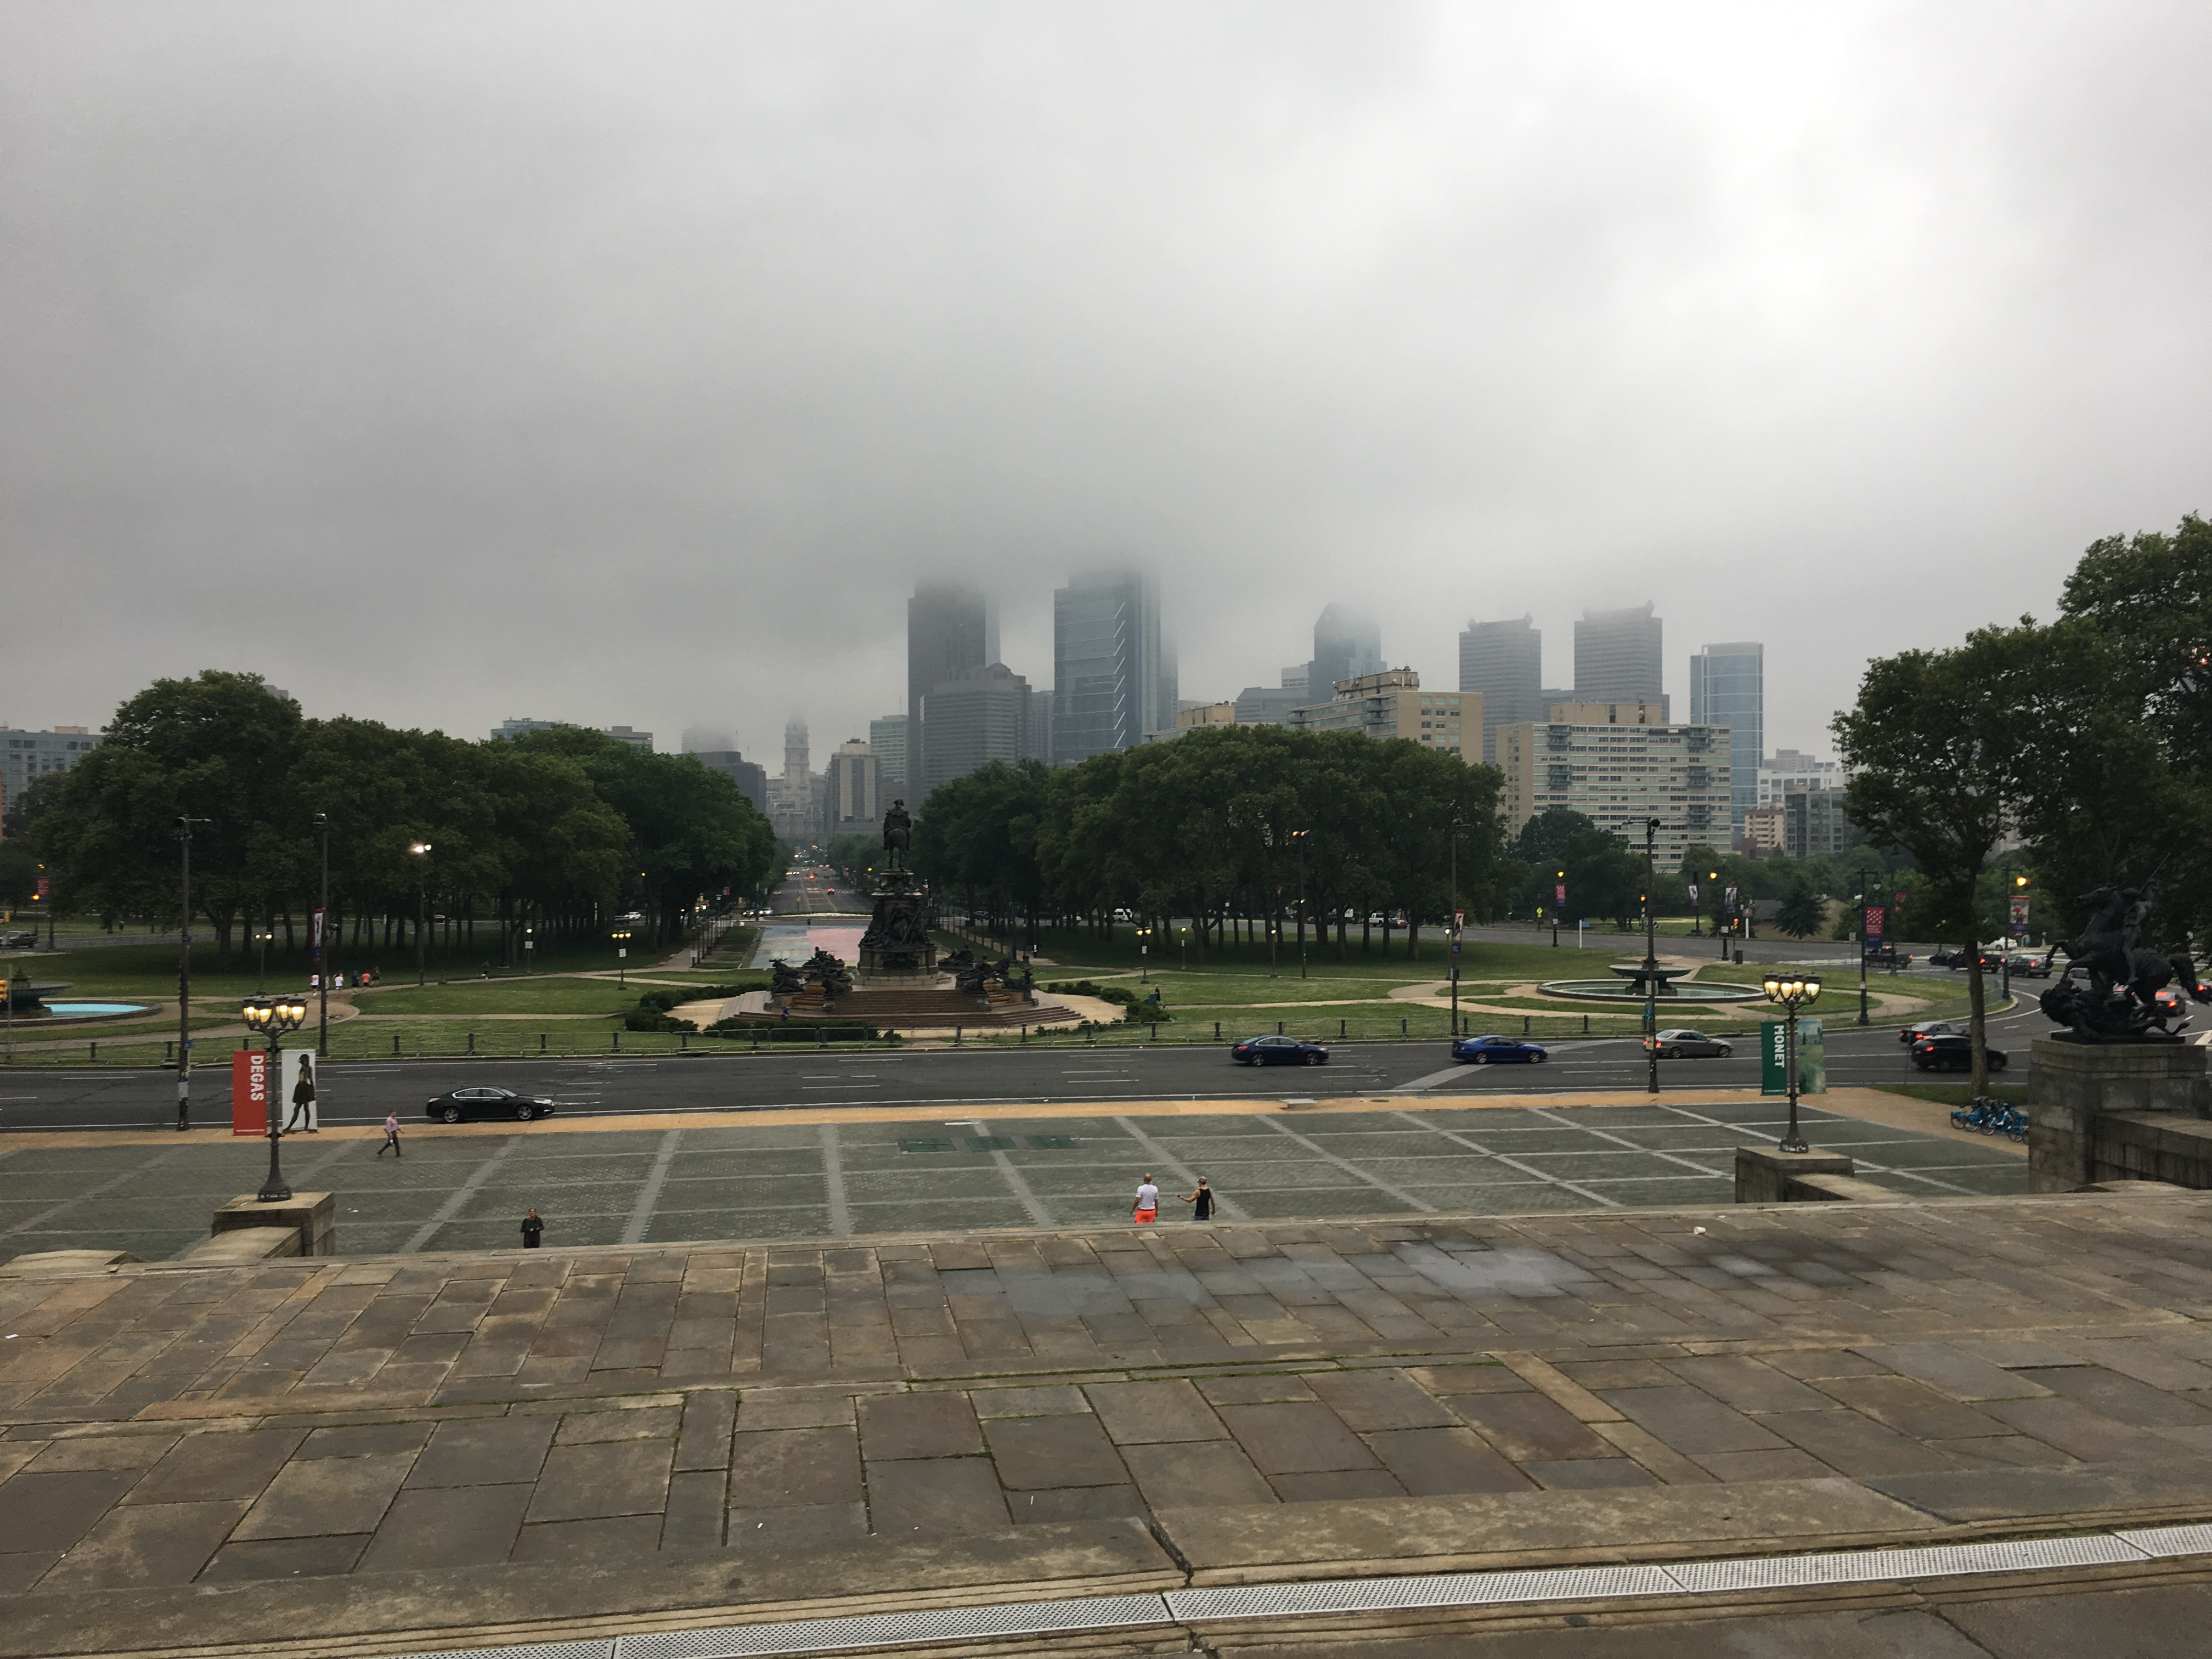 View of the Philadelphia skyline from top of steps at Philadelphia Museum of Art.